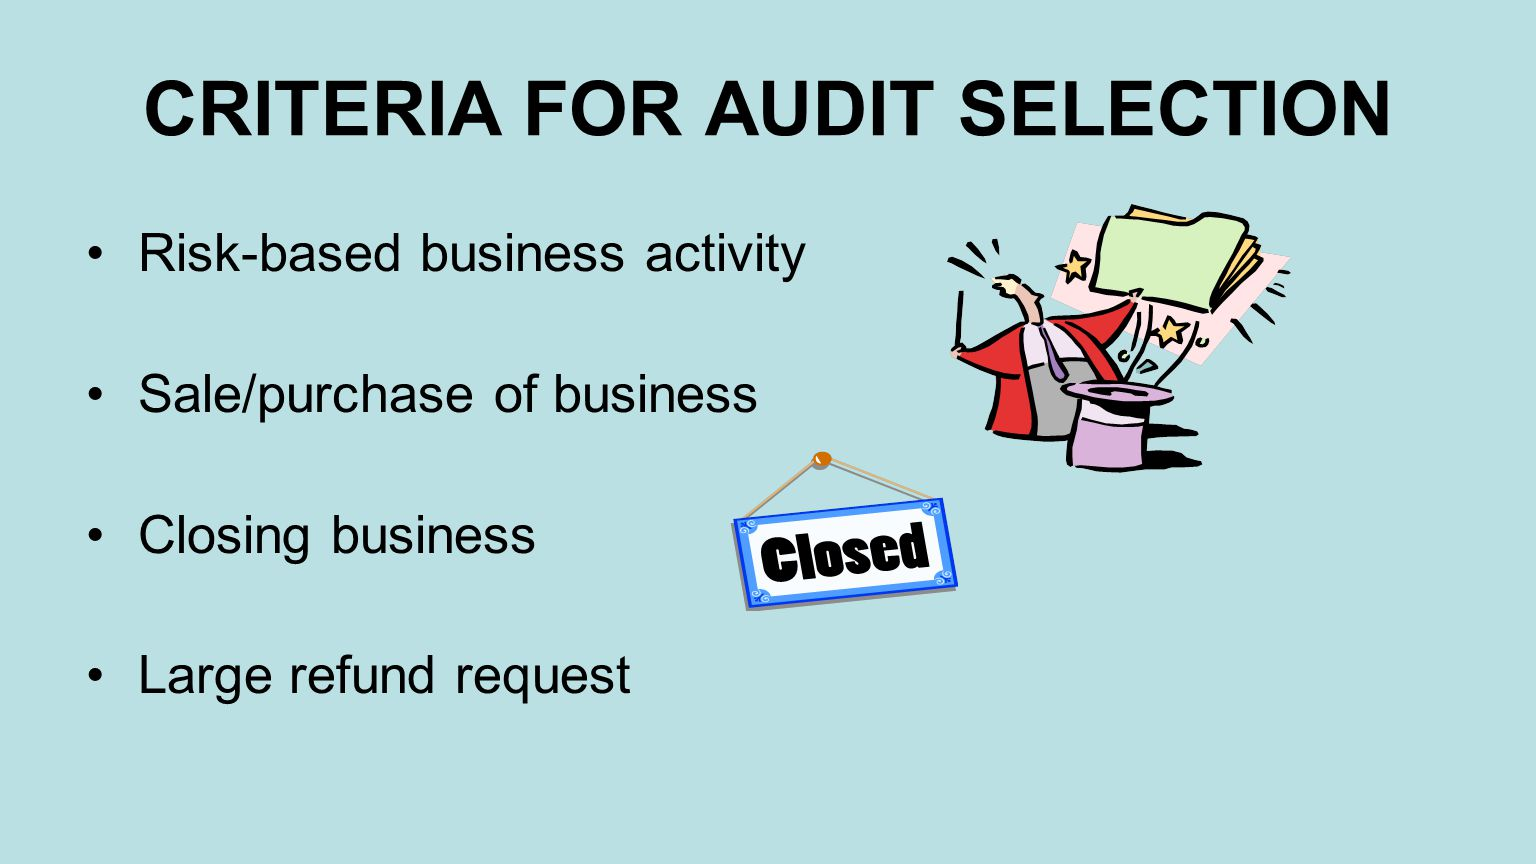 CRITERIA FOR AUDIT SELECTION Risk-based business activity Sale/purchase of business Closing business Large refund request